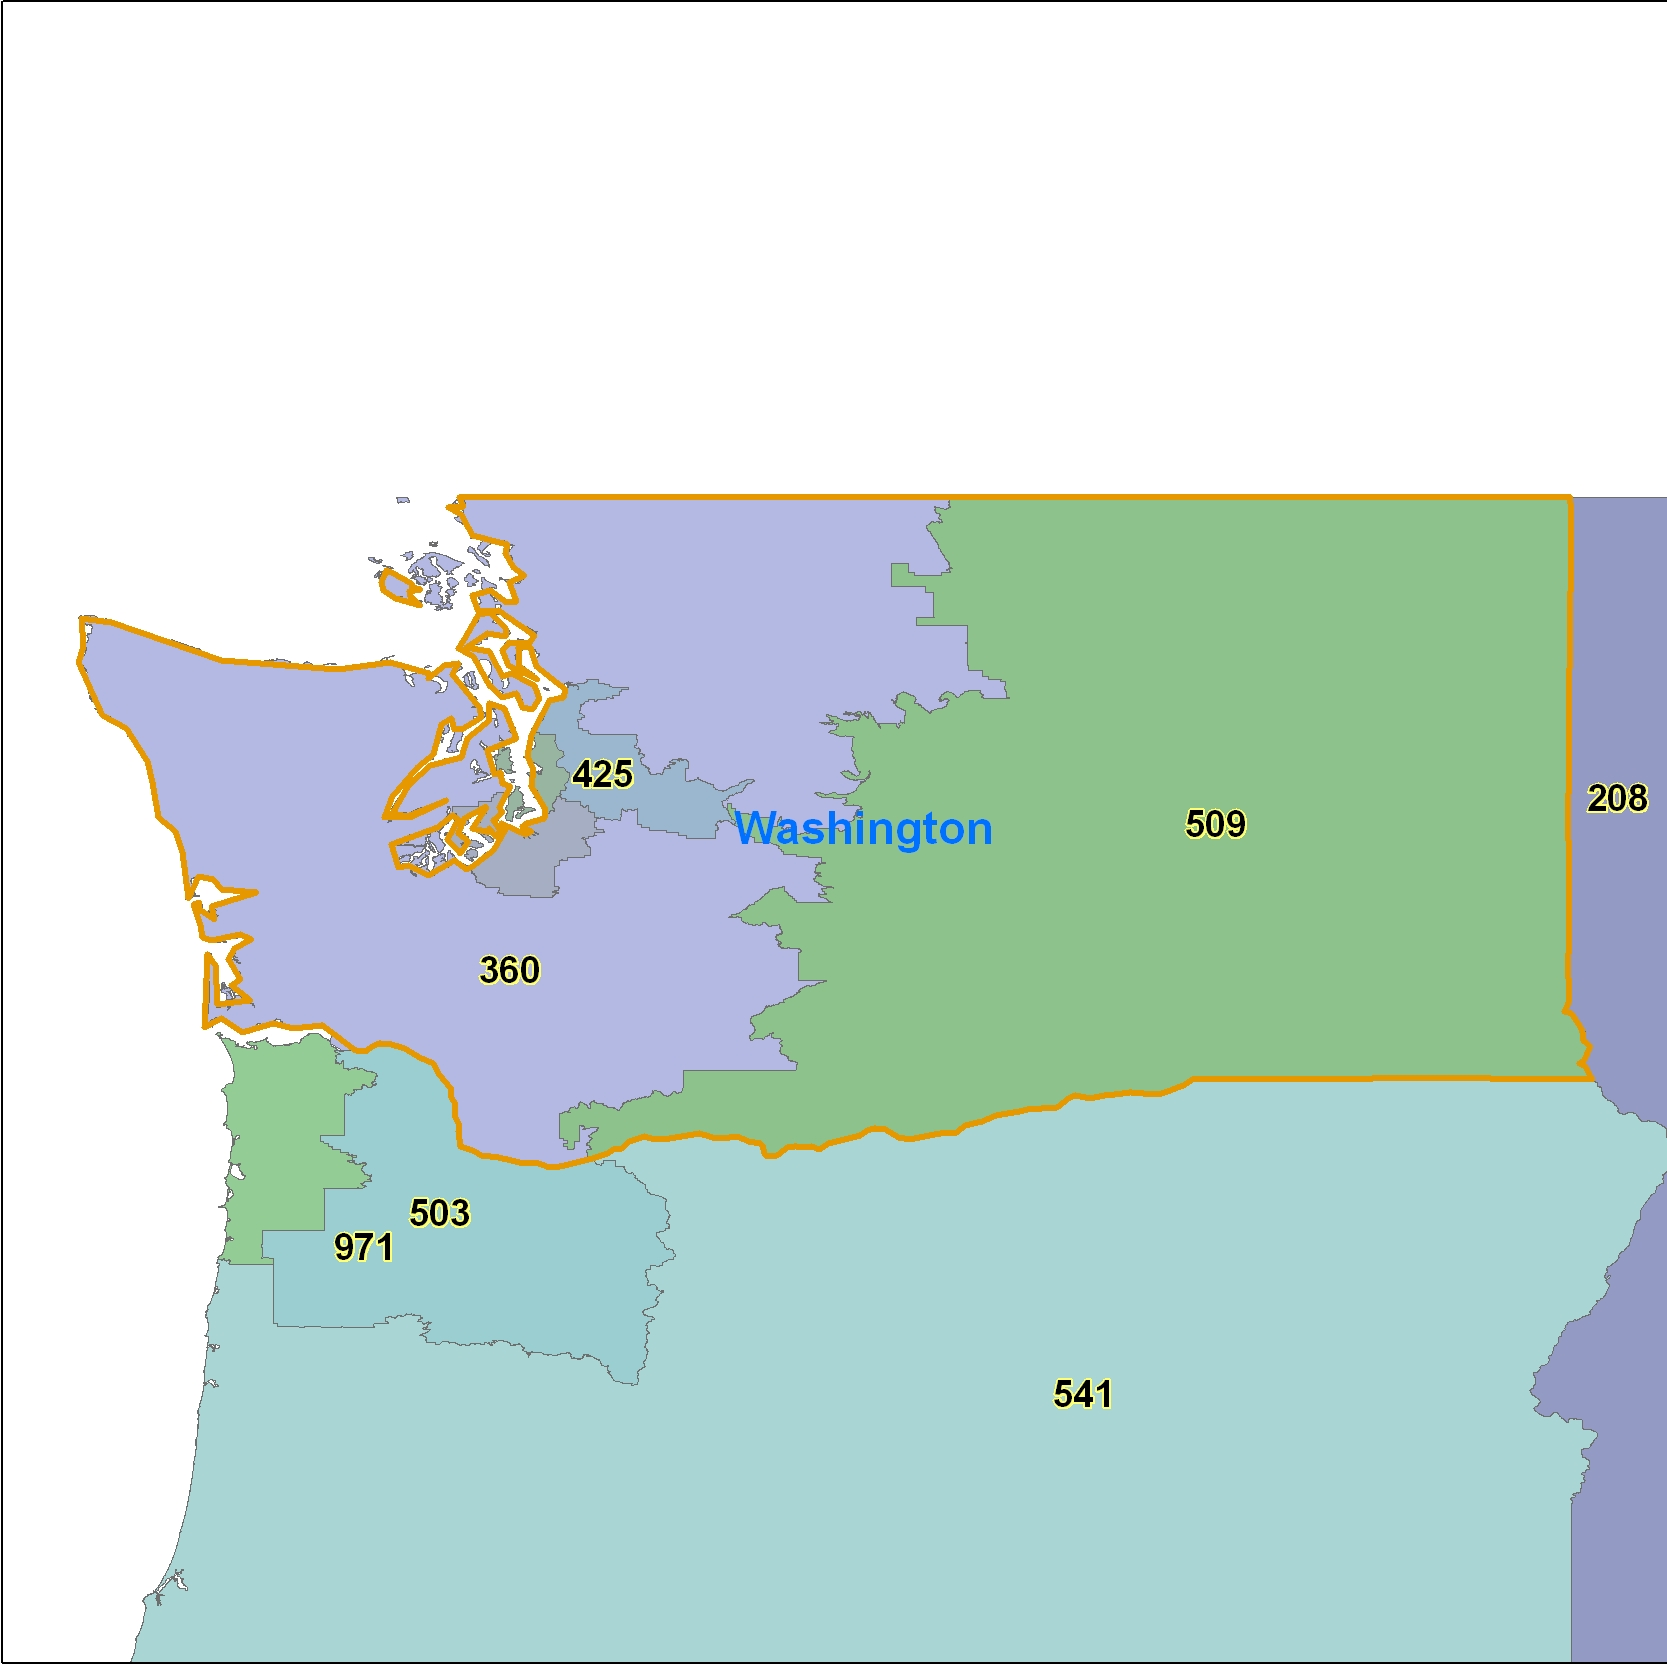 Washington Area Code Maps Washington Telephone Area Code Maps Free